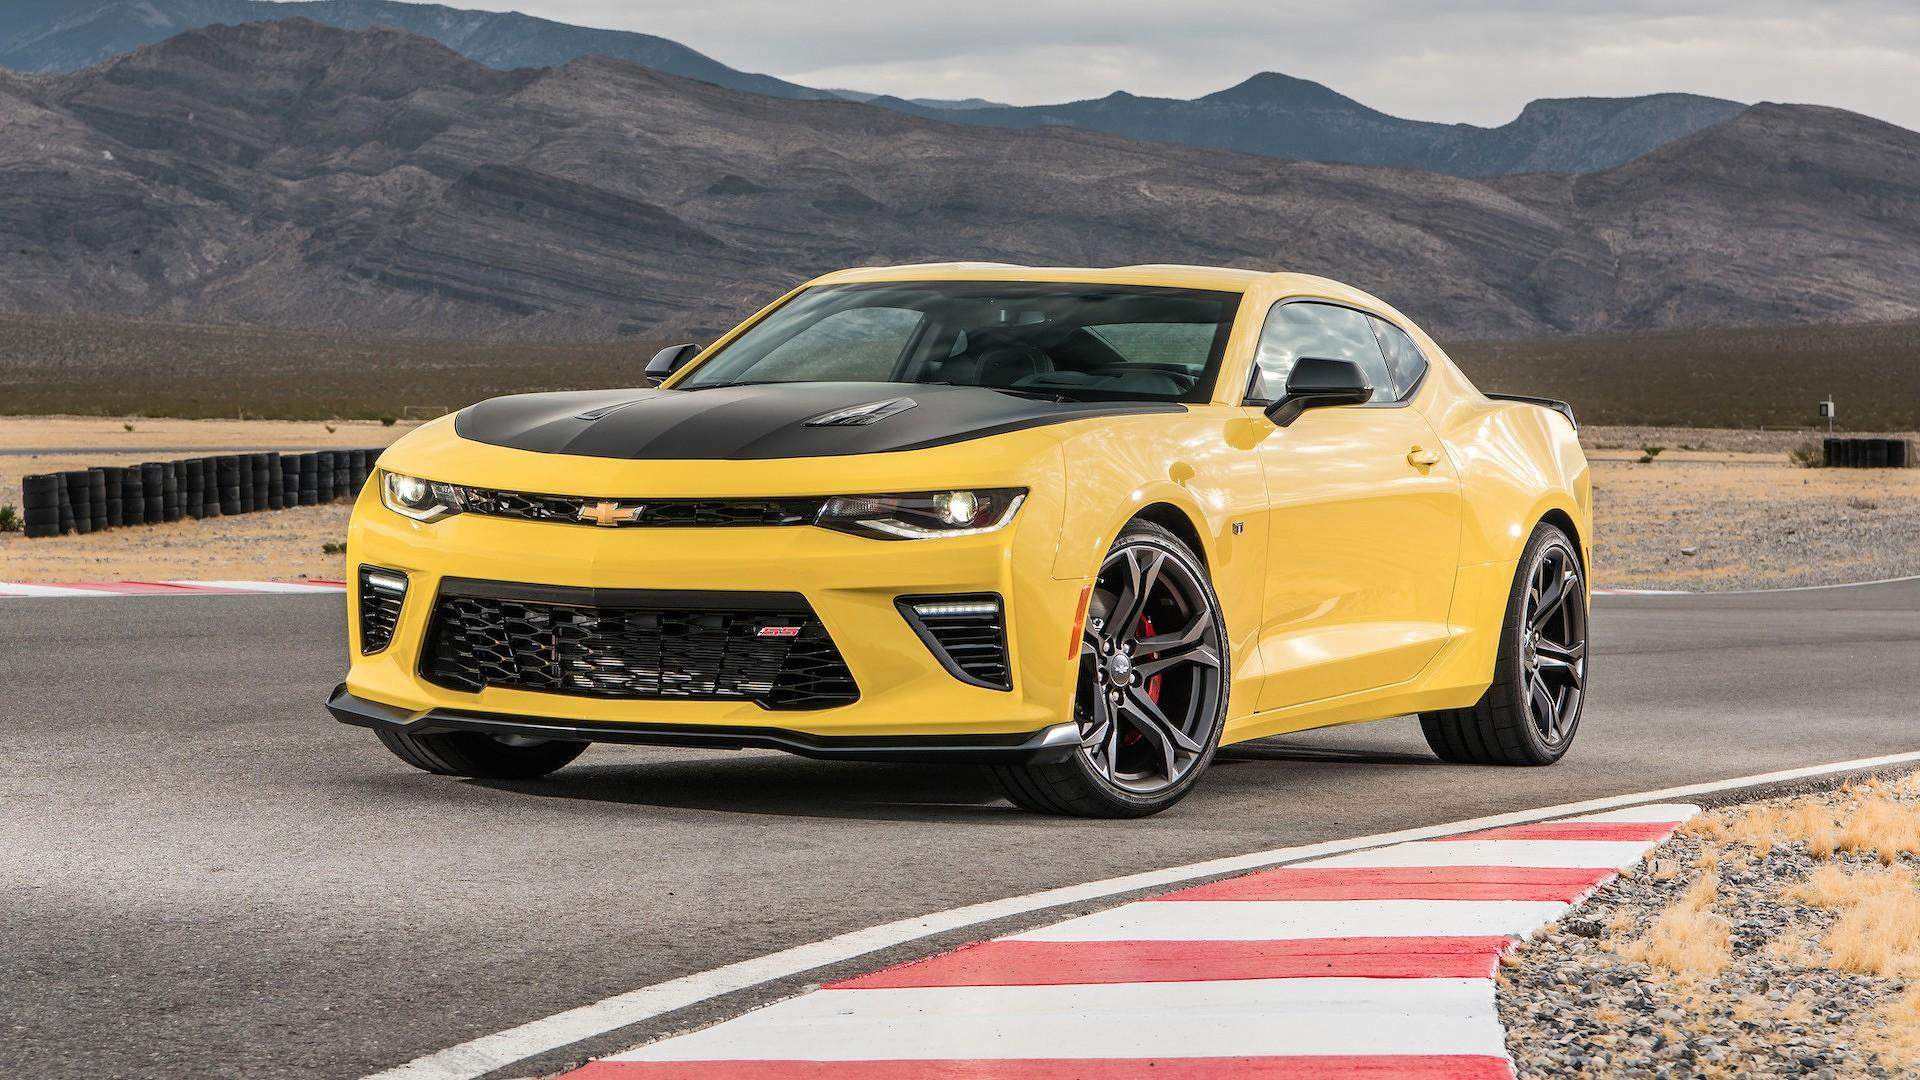 Chevrolet Camaro News - Muscle Cars